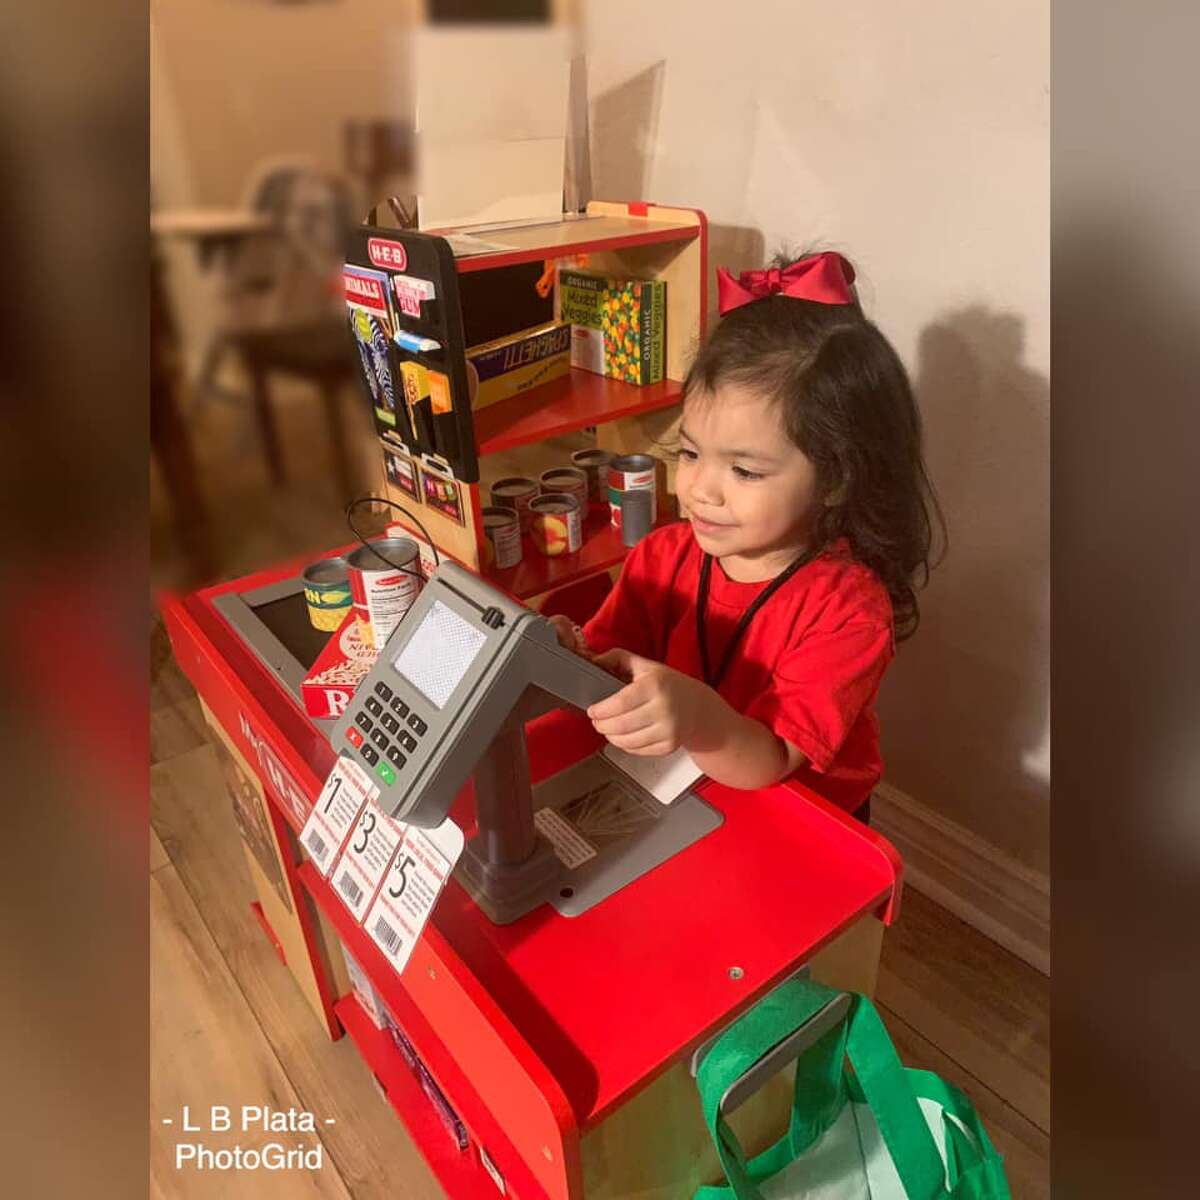 """""""I mean the H-E-B sign is so iconic and when she saw it she just smiled and immediatelysaid 'H-E-B,'"""" Plata said. """"Right away, she was like mom, 'come to my store.' She was so excited and so cute."""""""